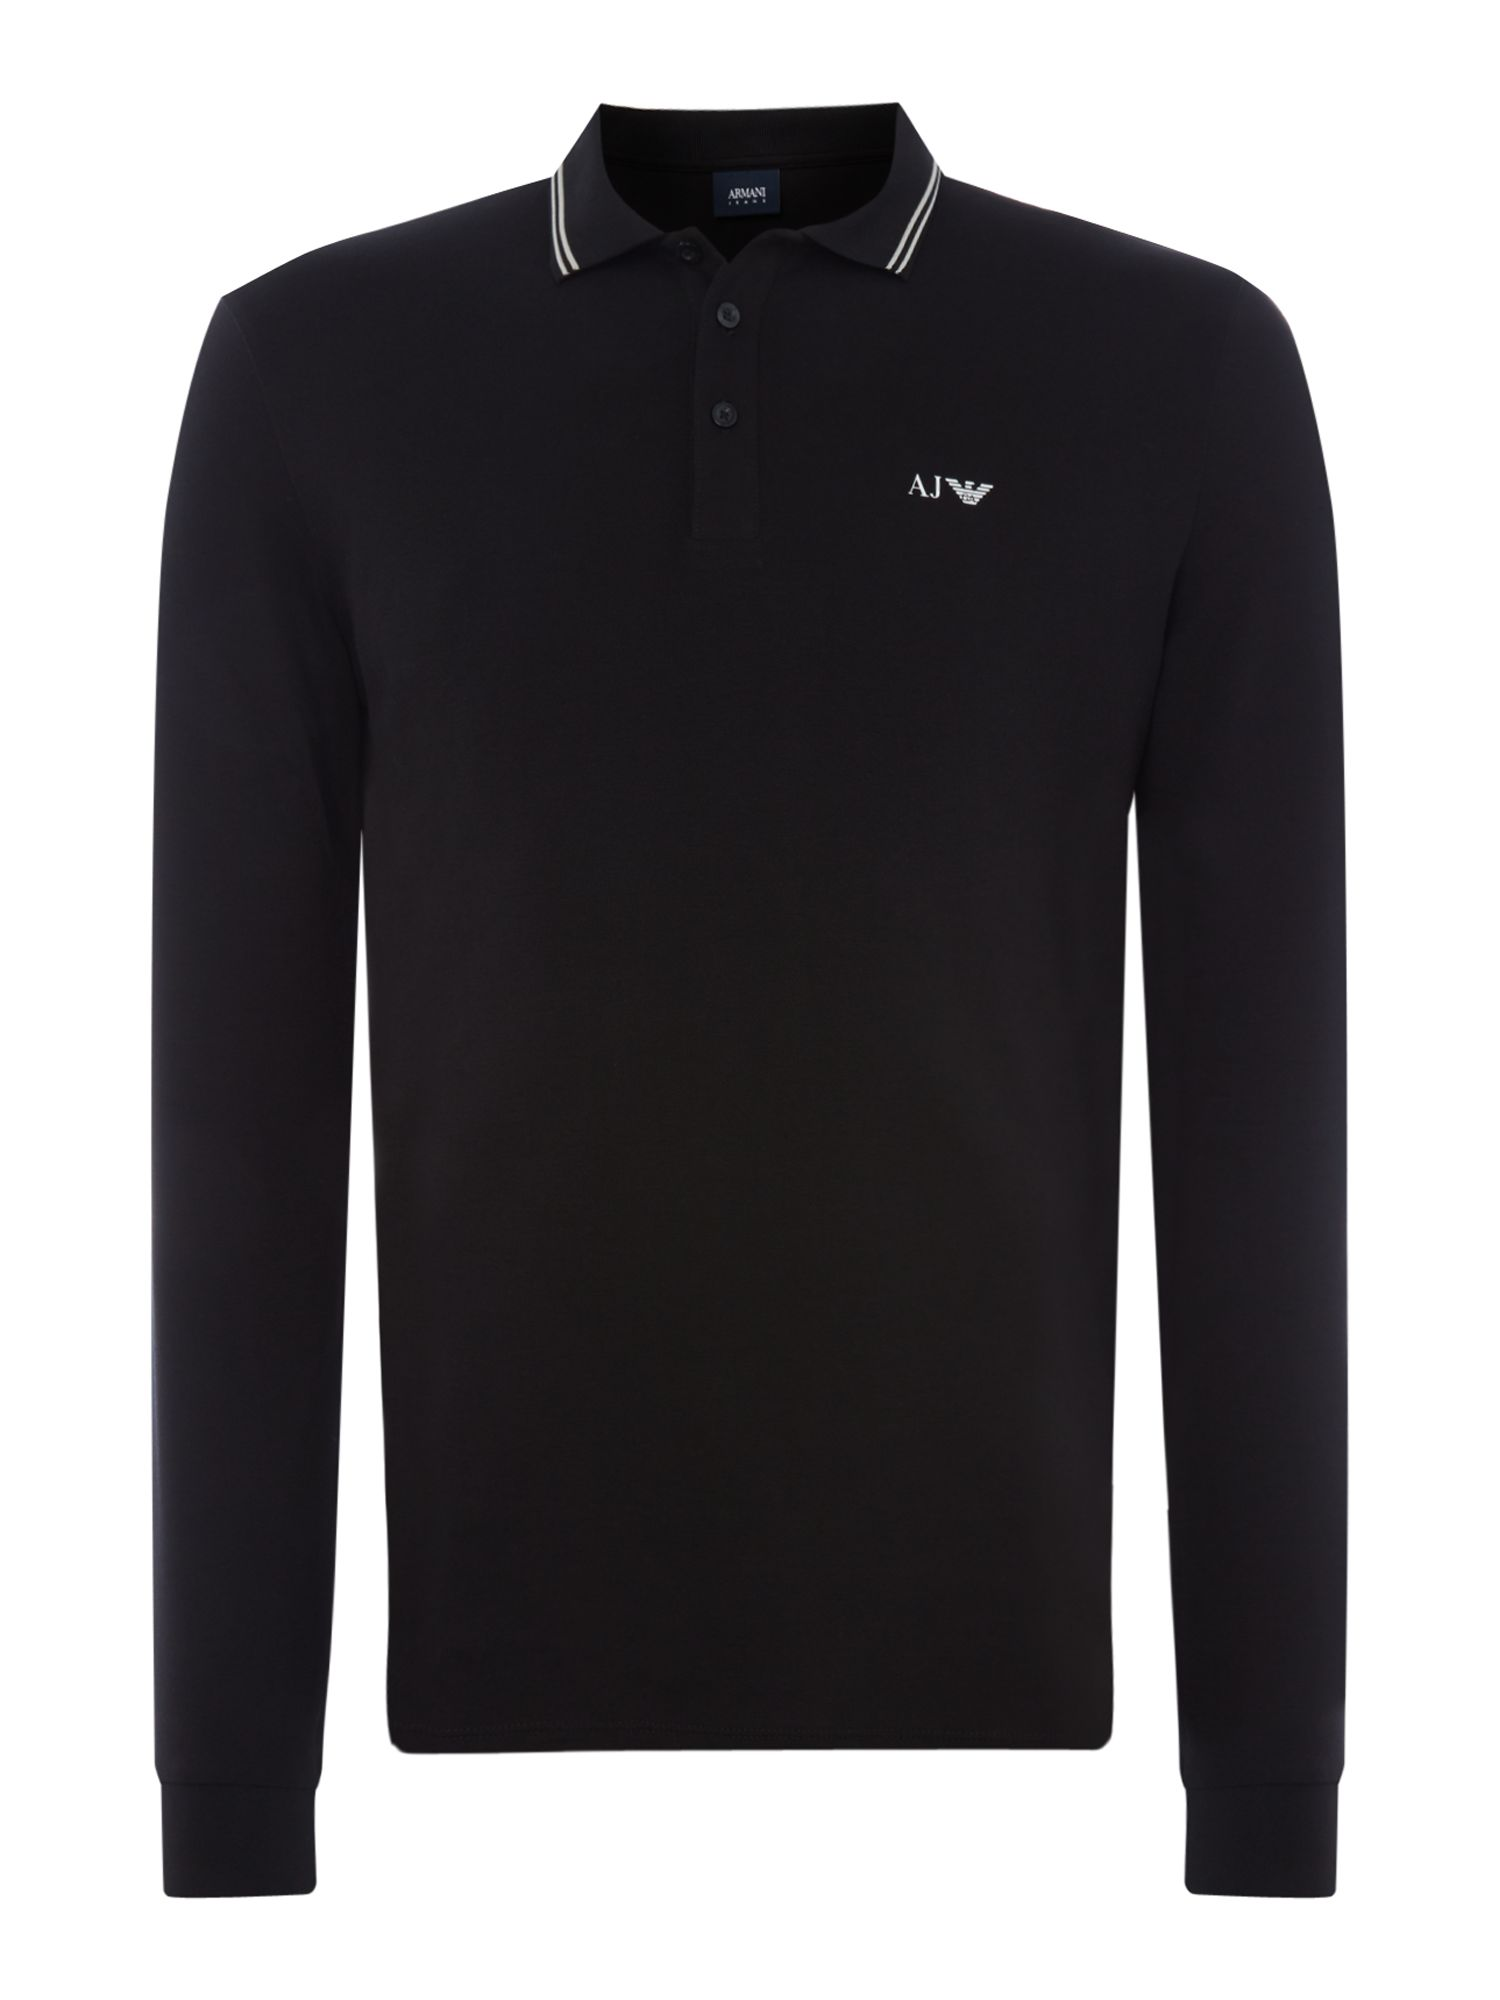 Men's Armani Jeans Long sleeve tipped polo shirt, Black